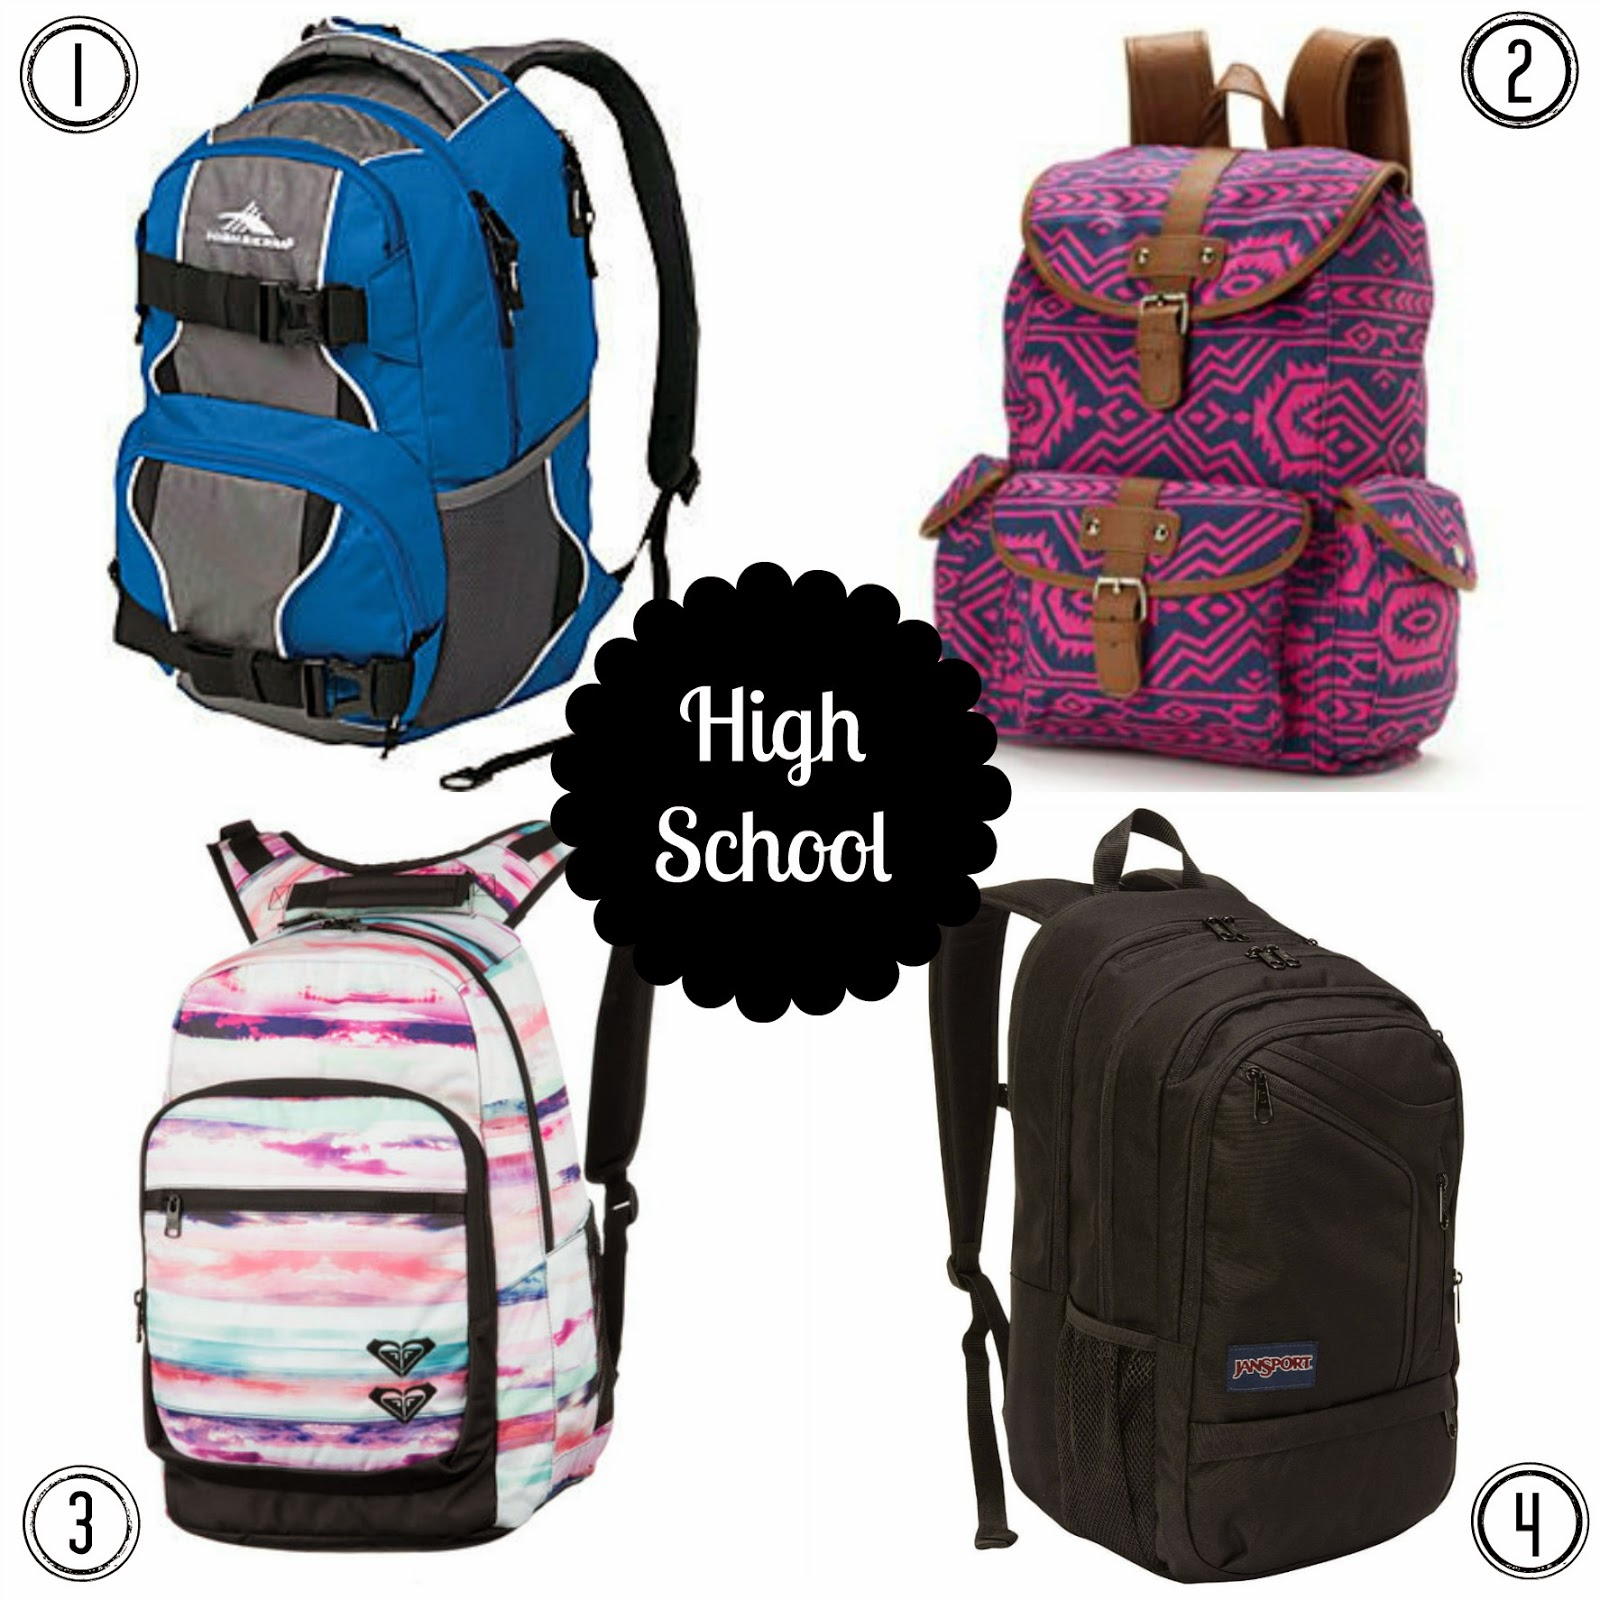 It's a Mom Thing Reviews & More!: Our Top Backpack Picks!